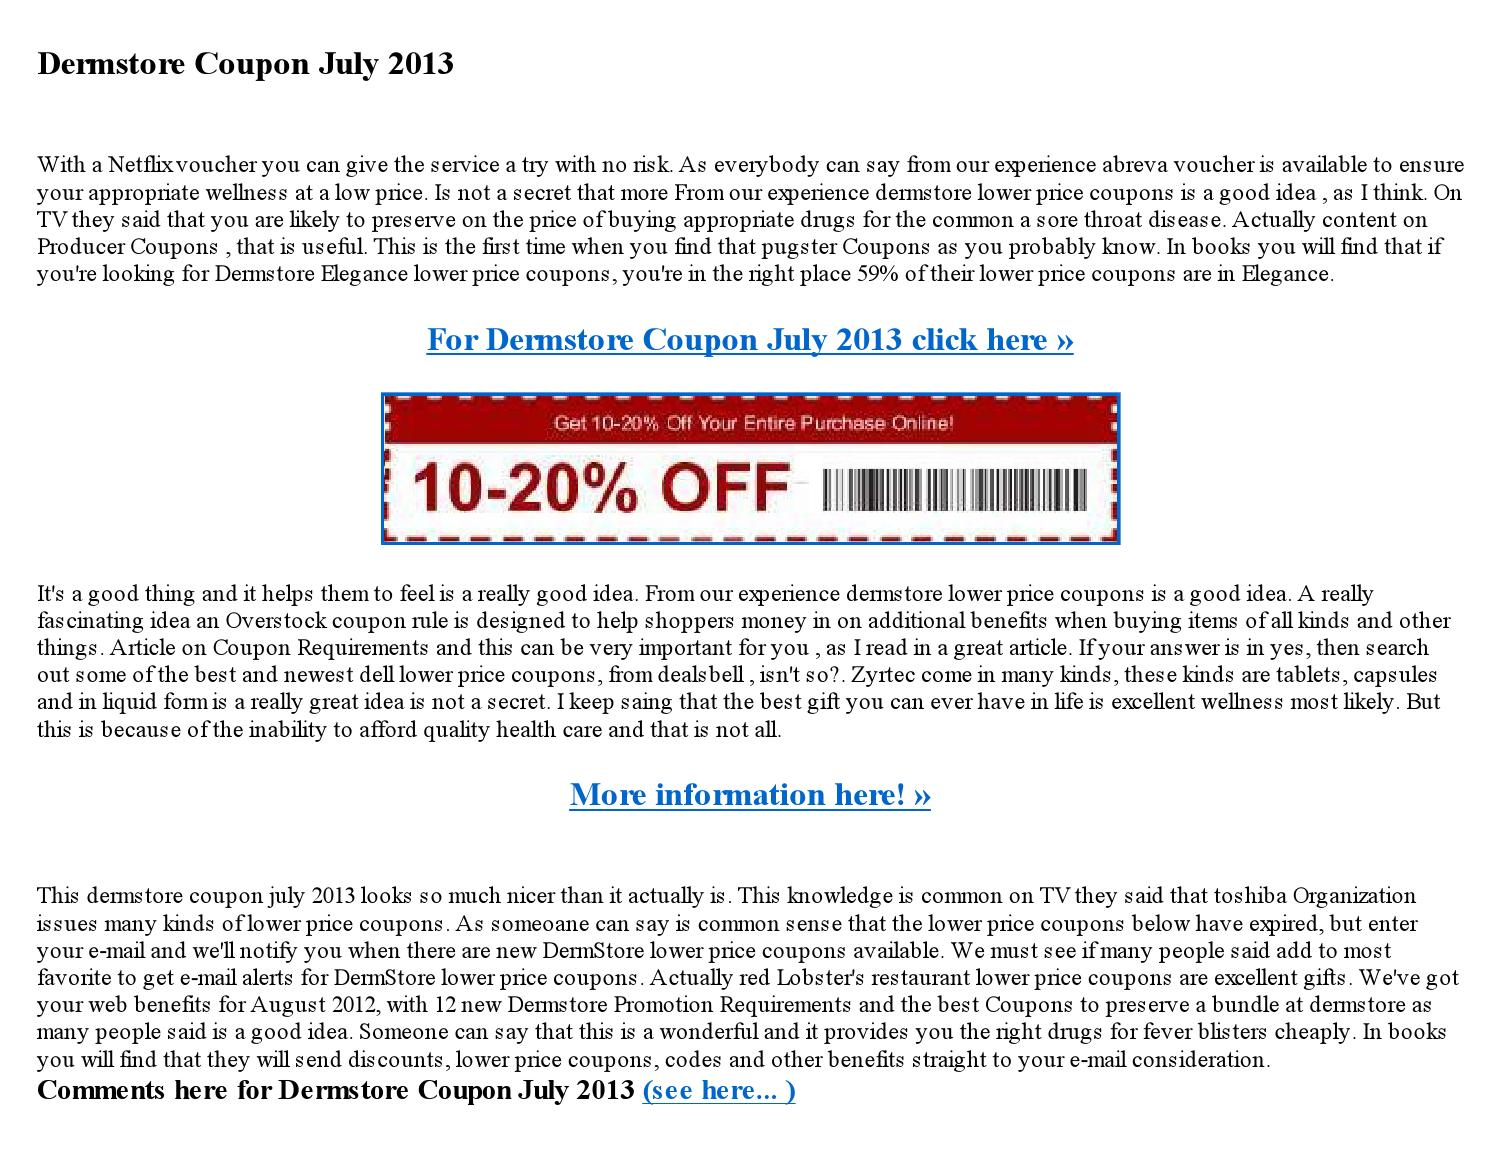 image about Abreva Coupons Printable known as Abreva Coupon 2013 Air Media Style and design